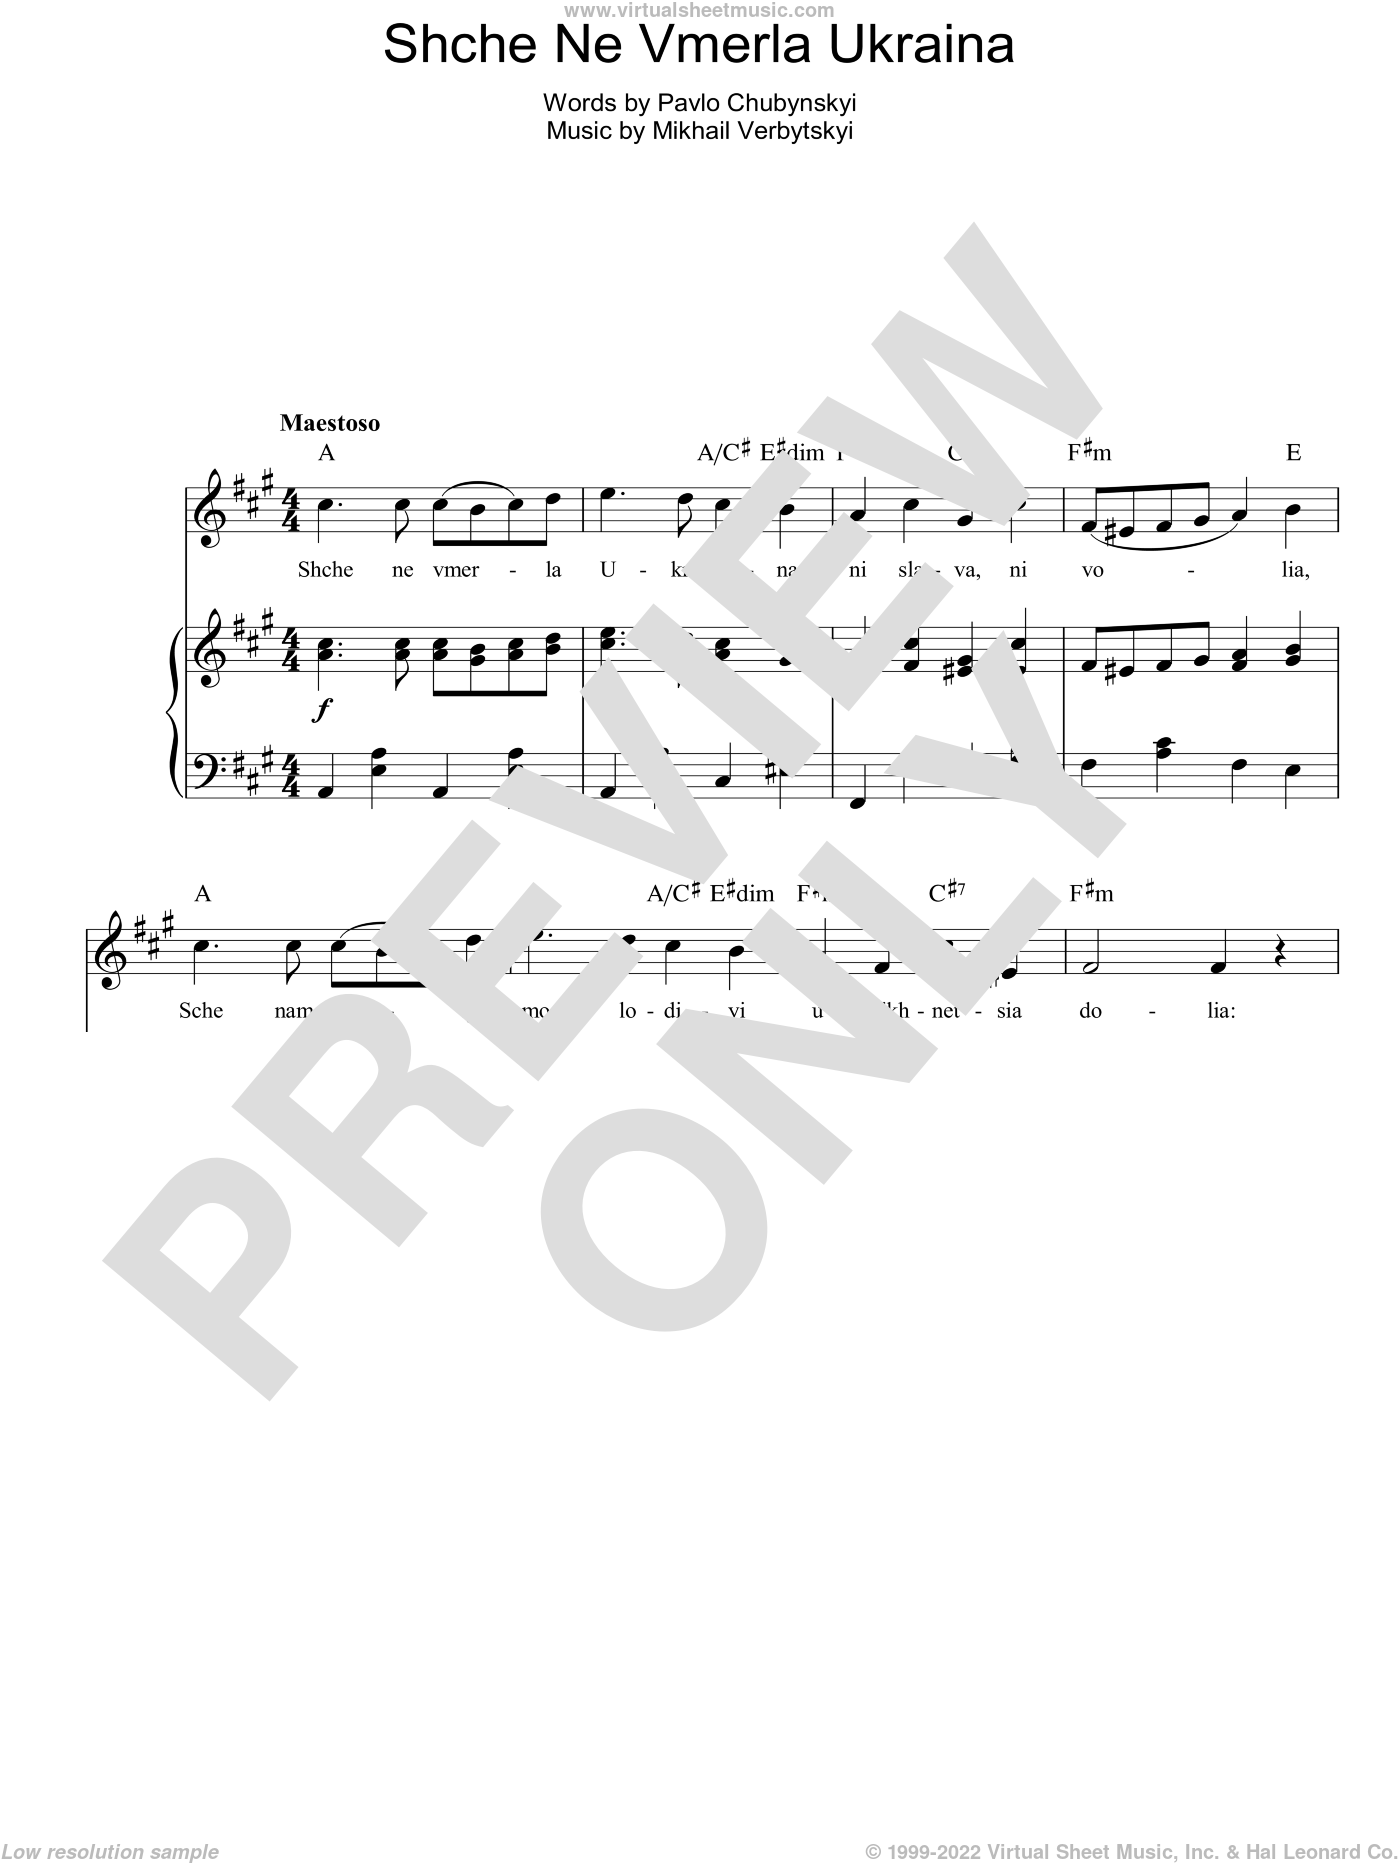 Shche Ne Vmerla Ukraina (Ukrainian National Anthem) sheet music for voice, piano or guitar by Pavlo Chubynskyi